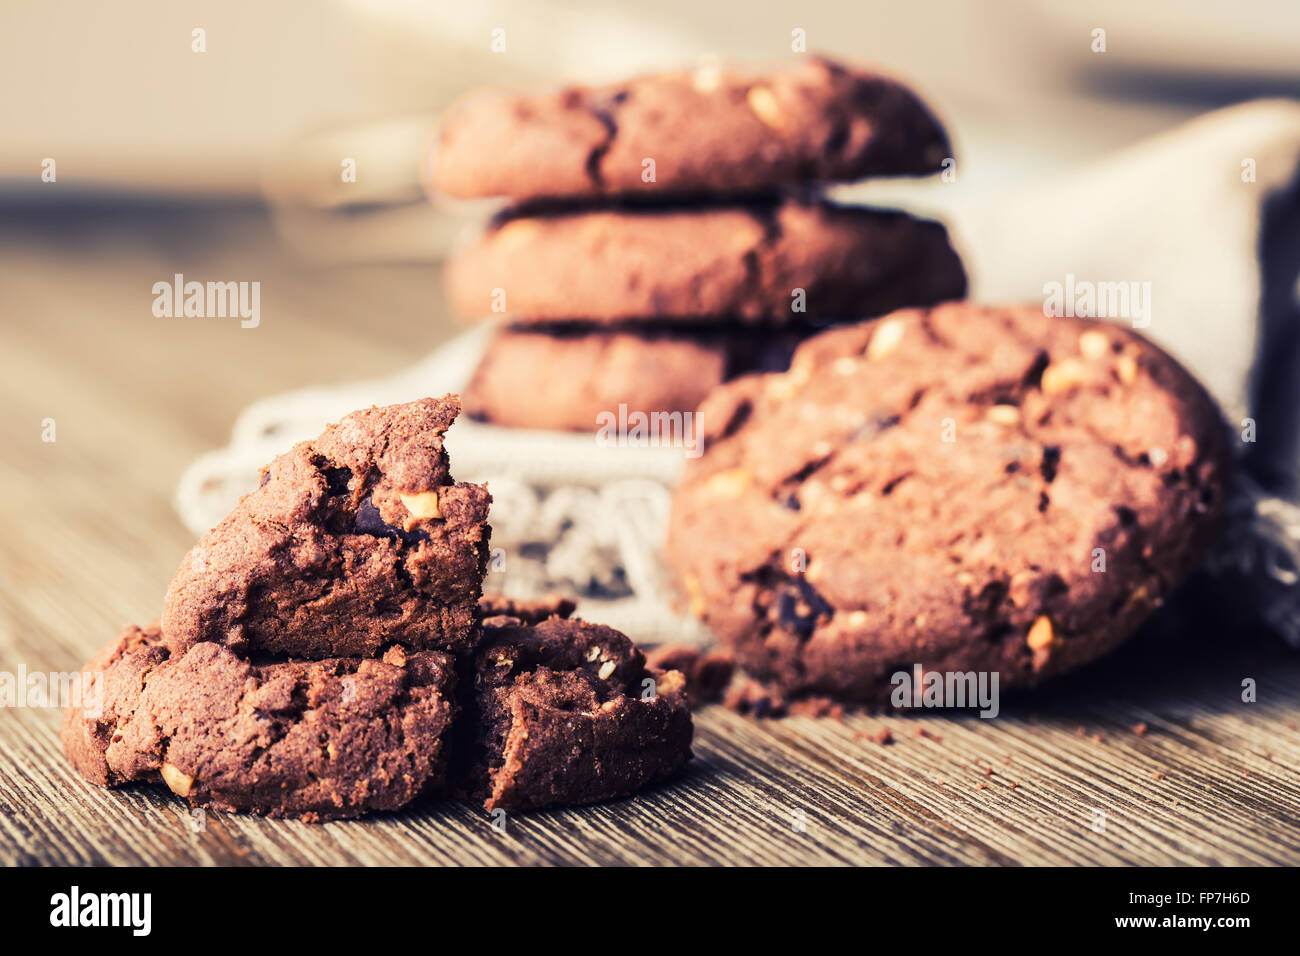 Chocolate biscuit cookies. Chocolate cookies on white linen napkin on wooden table. - Stock Image